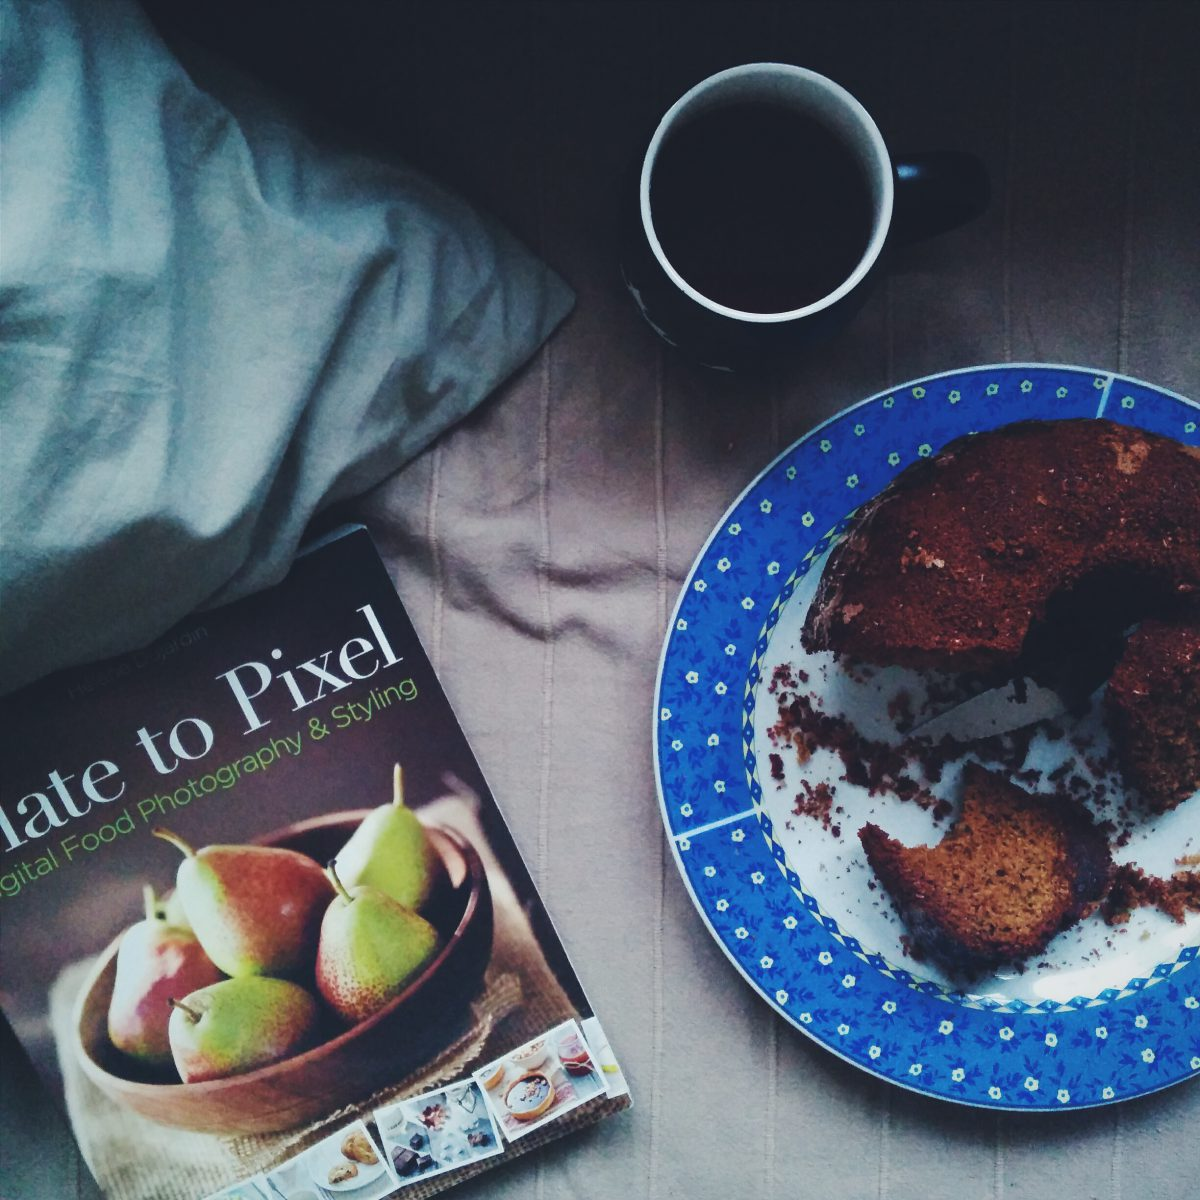 Homemade bun with tea and a book